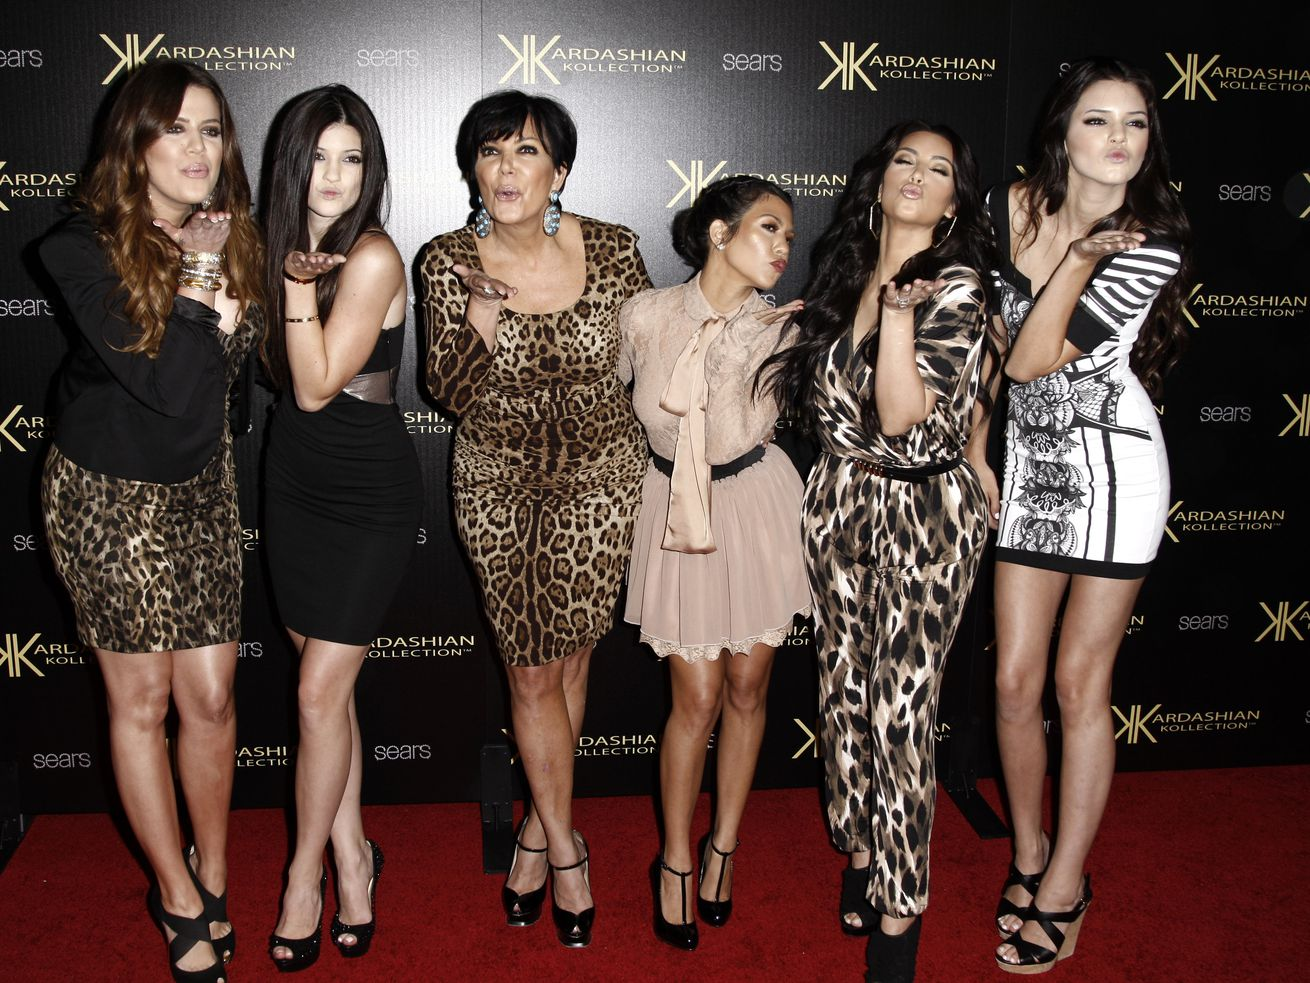 """Khloe Kardashian (from left), Kylie Jenner, Kris Jenner, Kourtney Kardashian, Kim Kardashian and Kendall Jenner arrive at the Kardashian Kollection launch party in Los Angeles in 2017. Their 20-season hit TV series """"Keeping Up with the Kardashians"""" is coming to an end."""